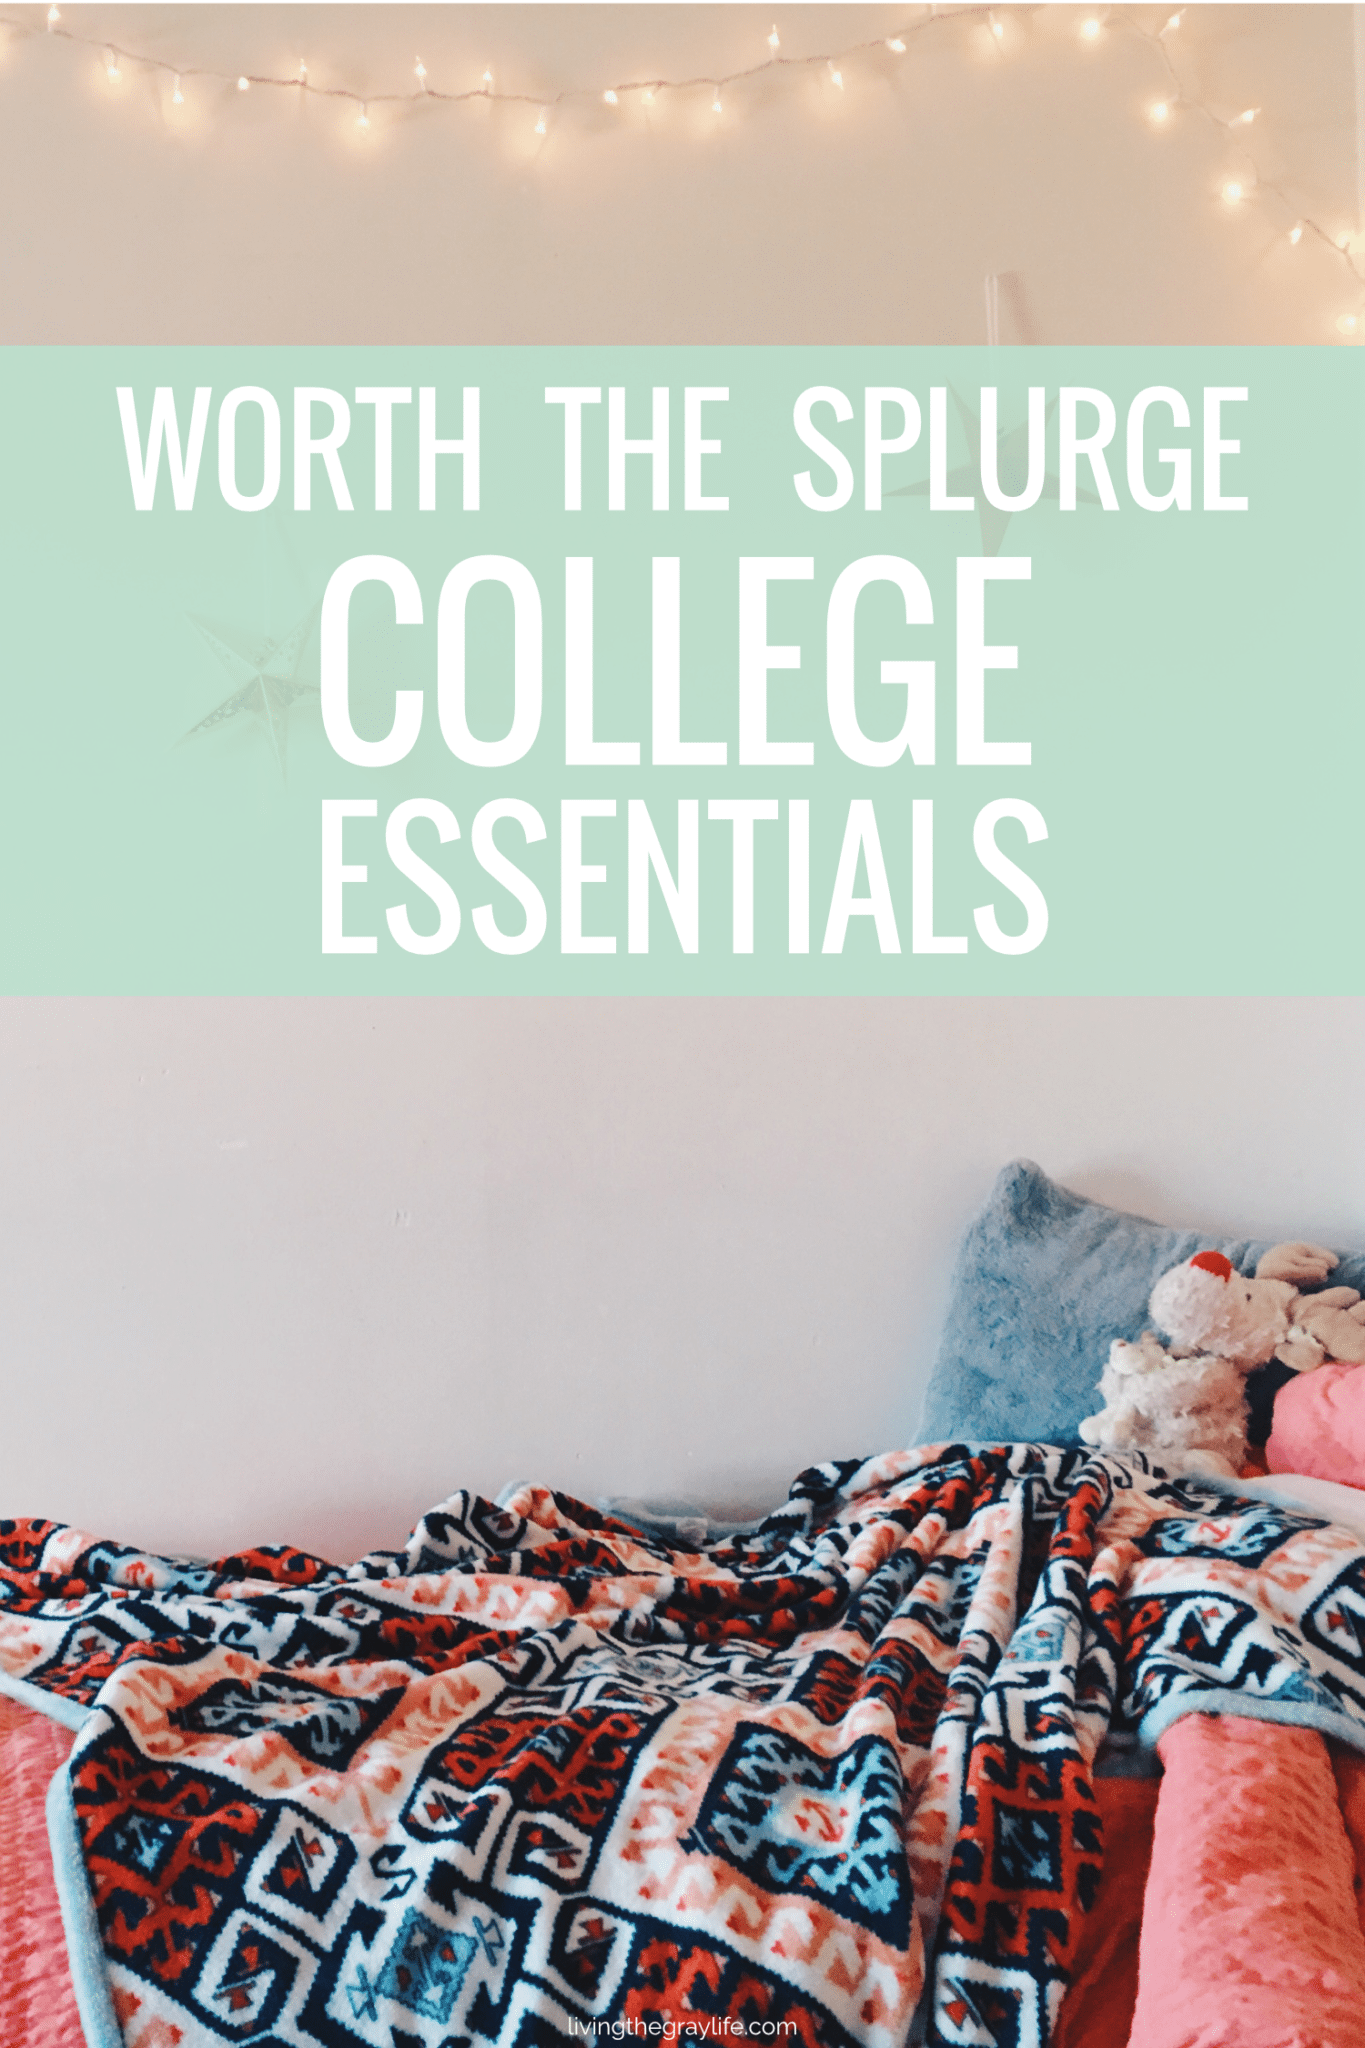 Essential college items worth the splurge.